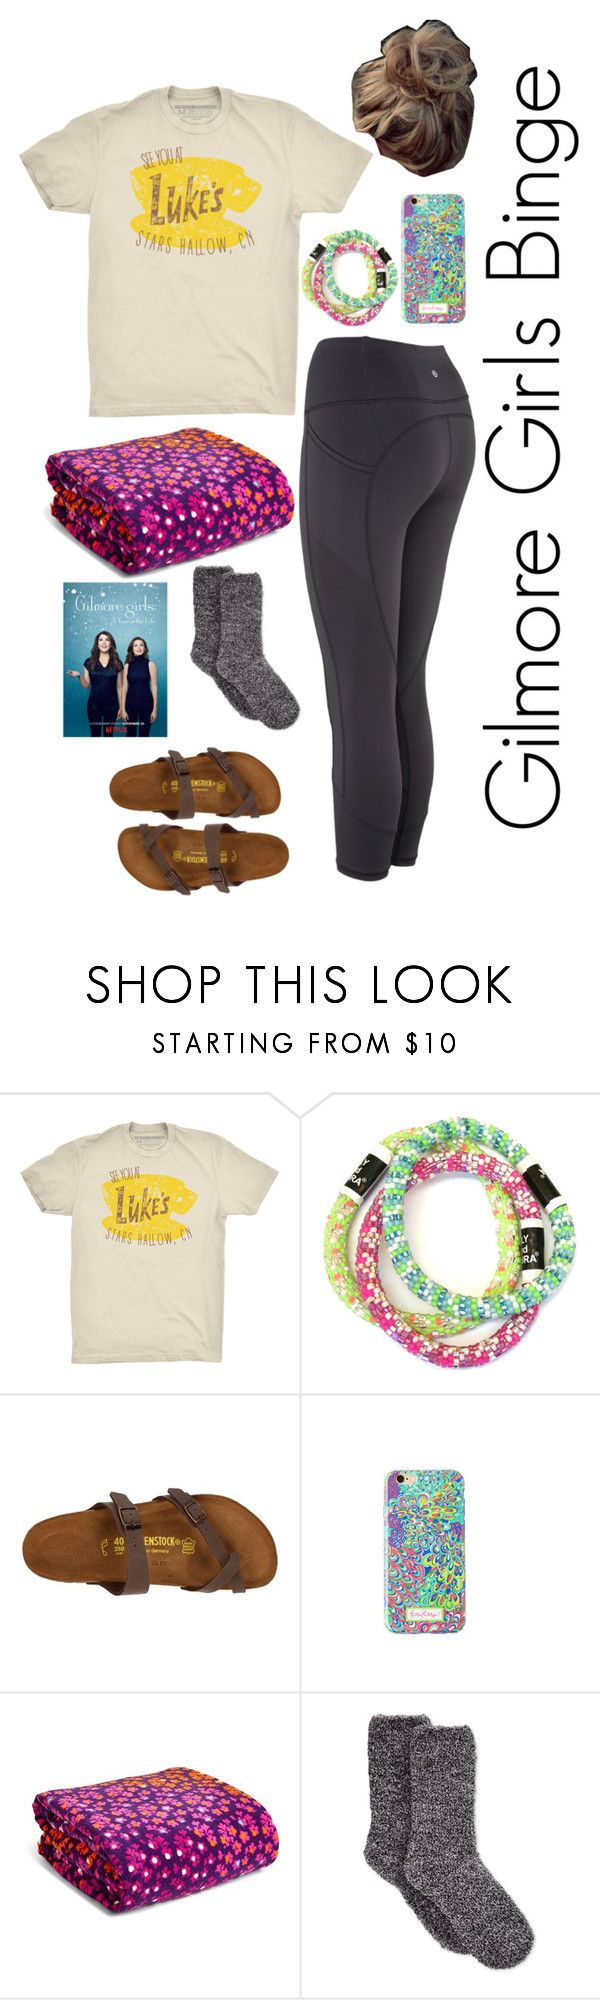 """""""Gilmore Girls Binge Day"""" by mirandamf on Polyvore featuring Birkenstock, Lilly Pulitzer, Vera Bradley and Charter Club"""